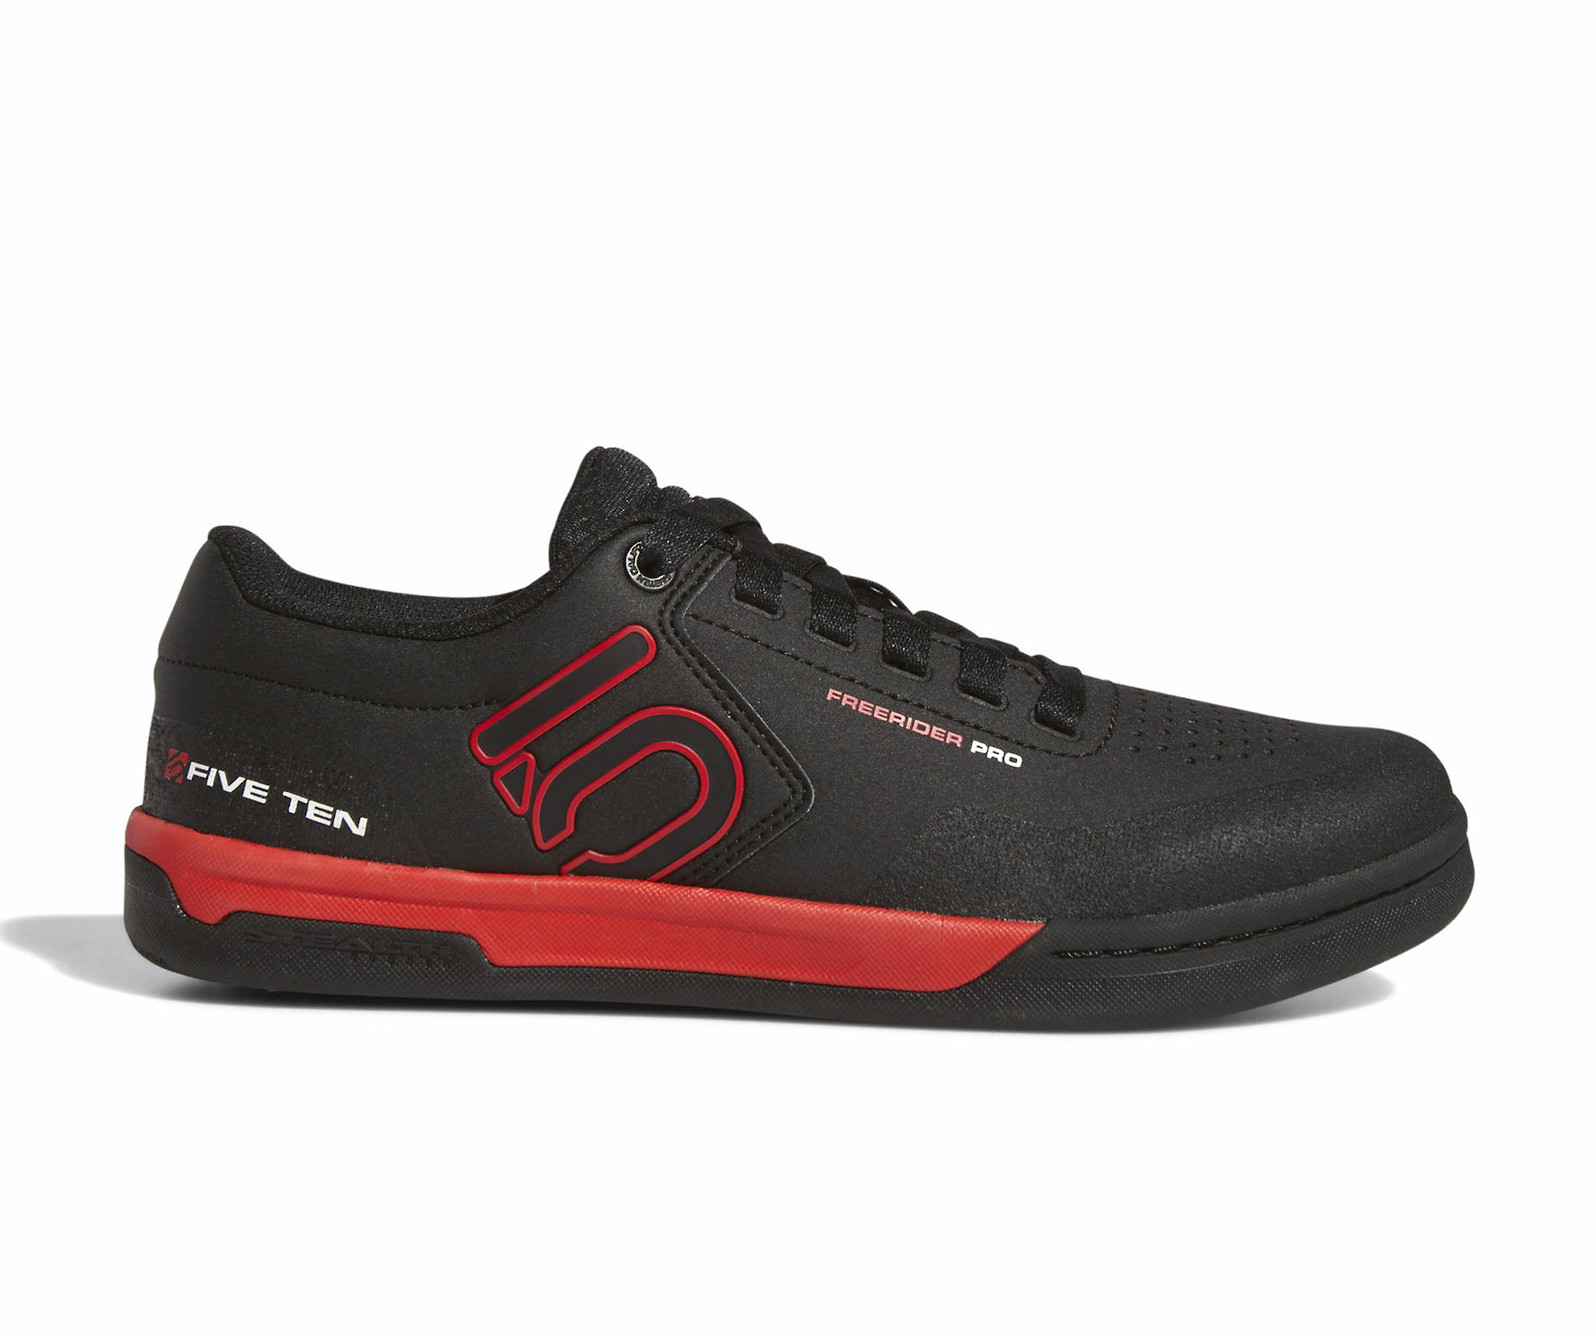 2019 Five Ten Freerider Pro Shoe